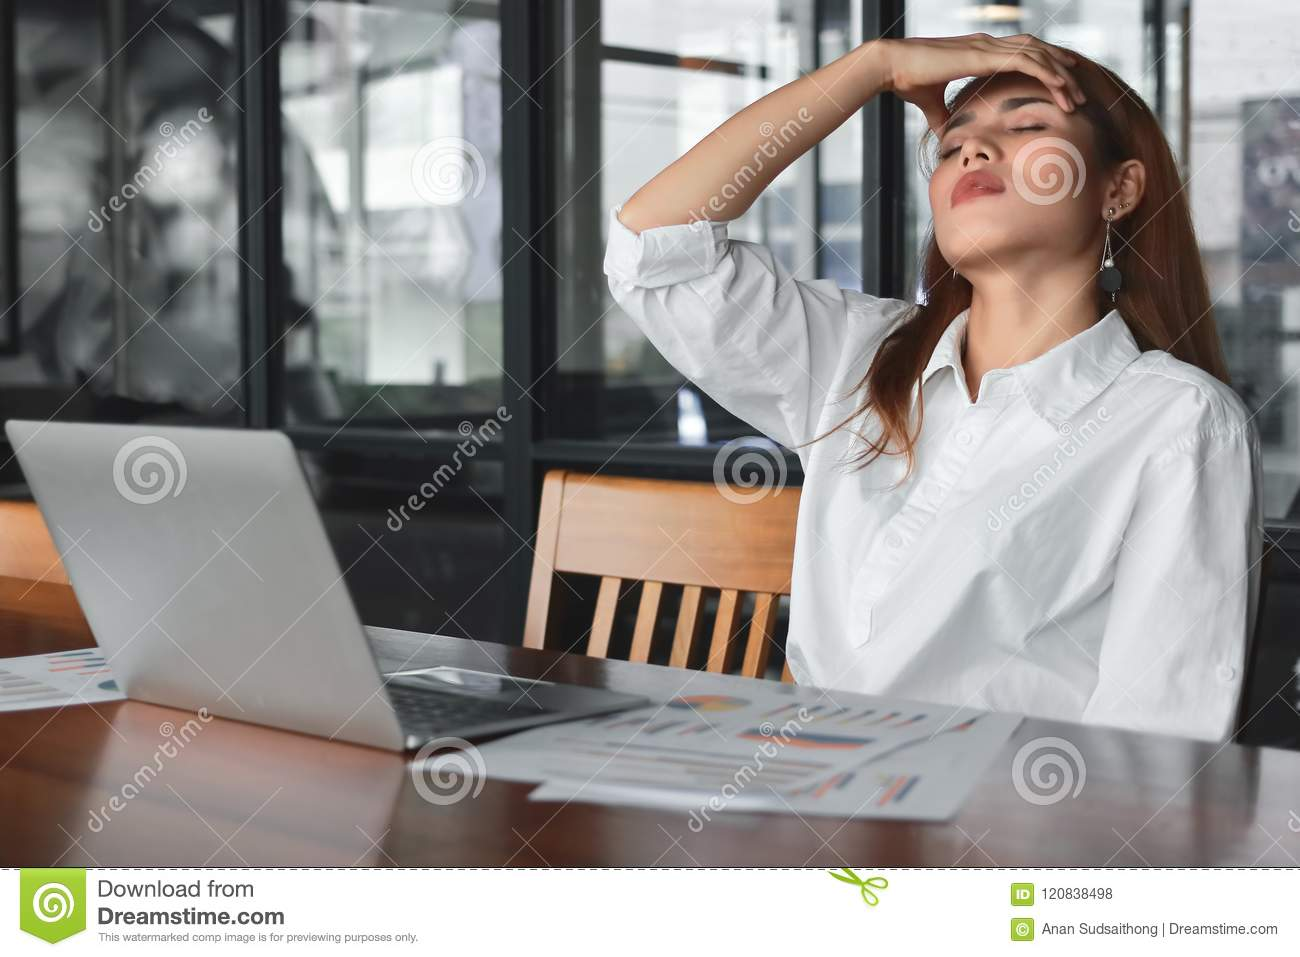 Tired overworked young Asian business woman suffering from severe depression in workplace.